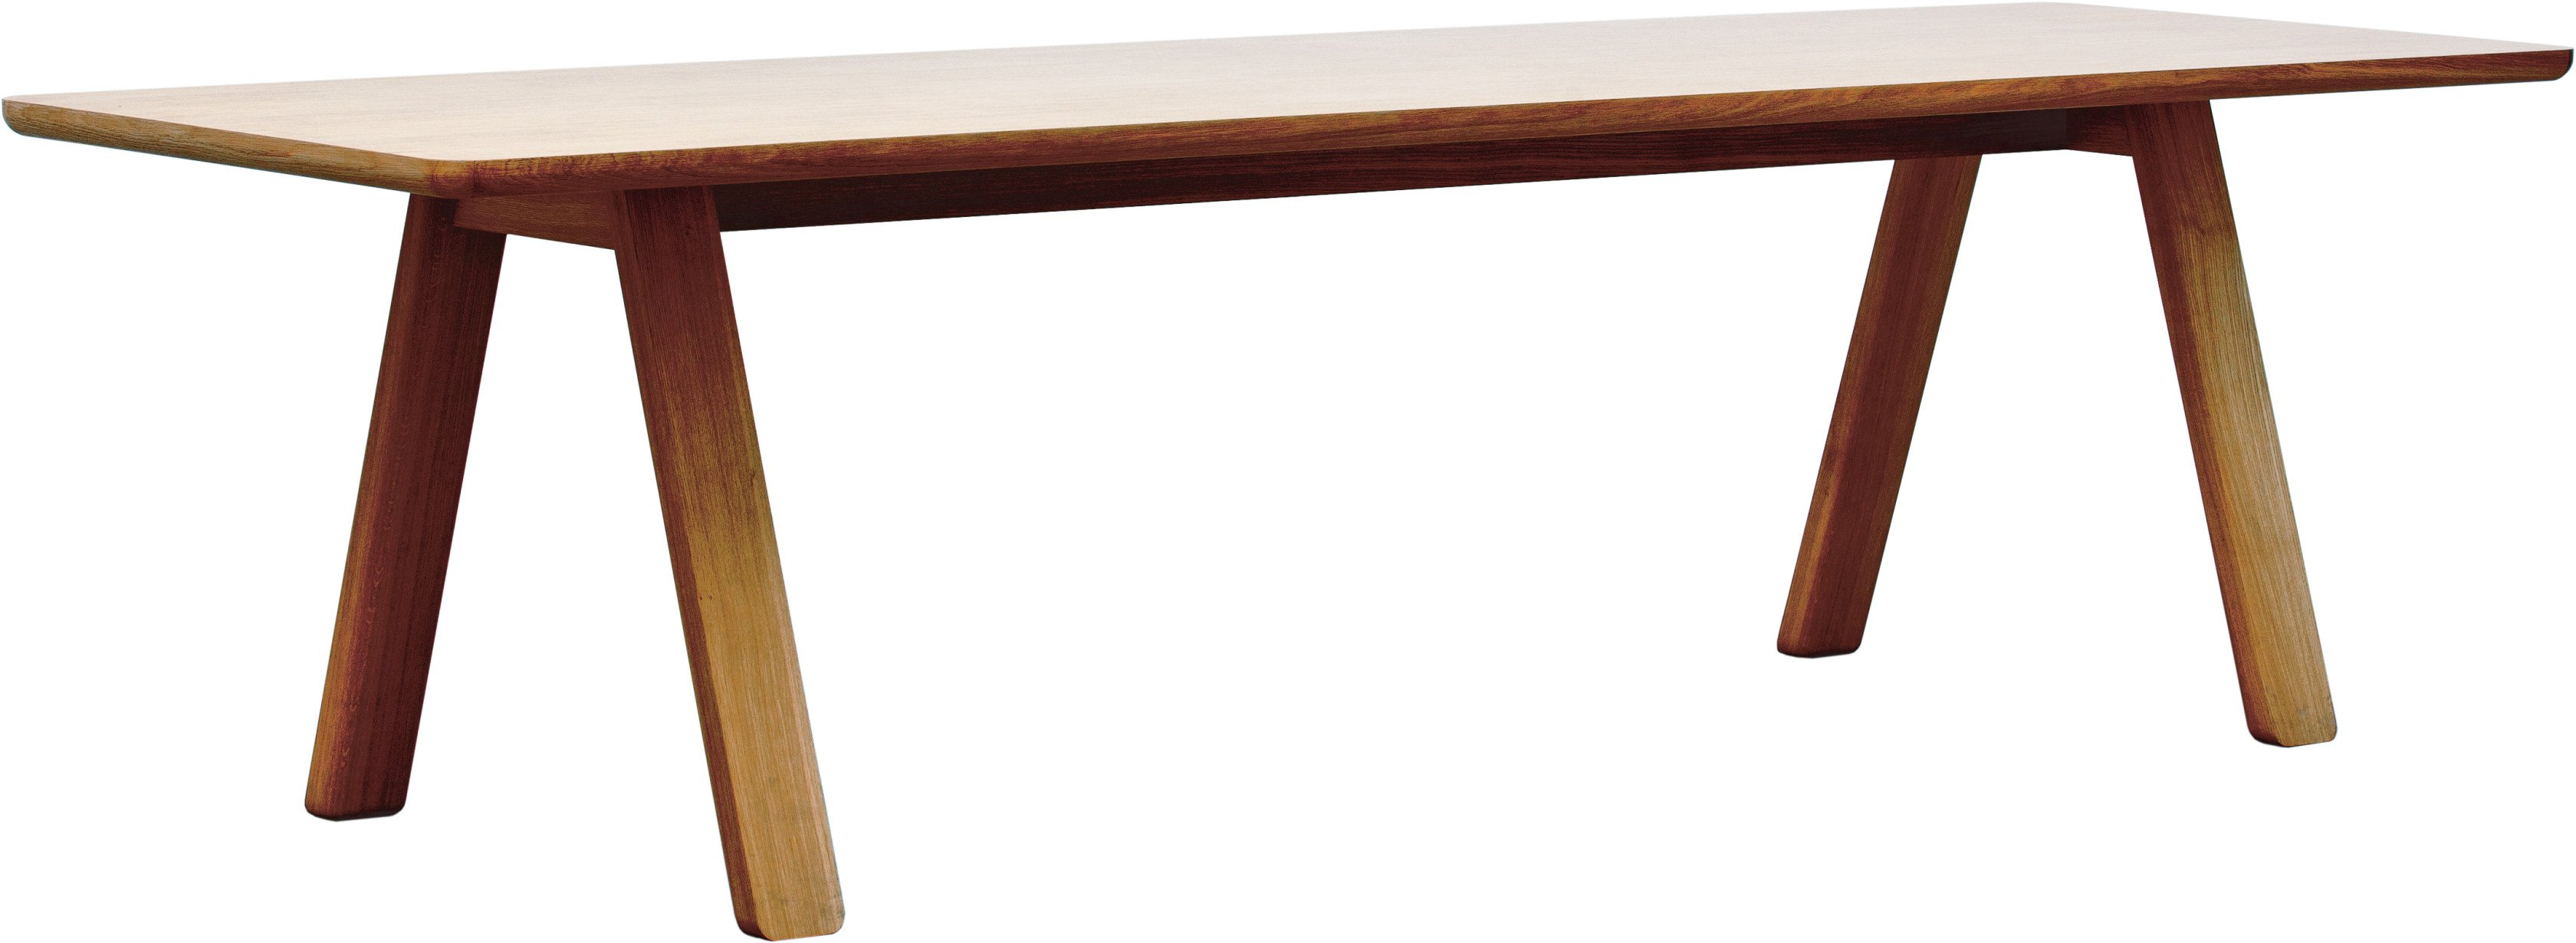 Stelvio Table 280x100 American Walnut by A. Gufler, TON